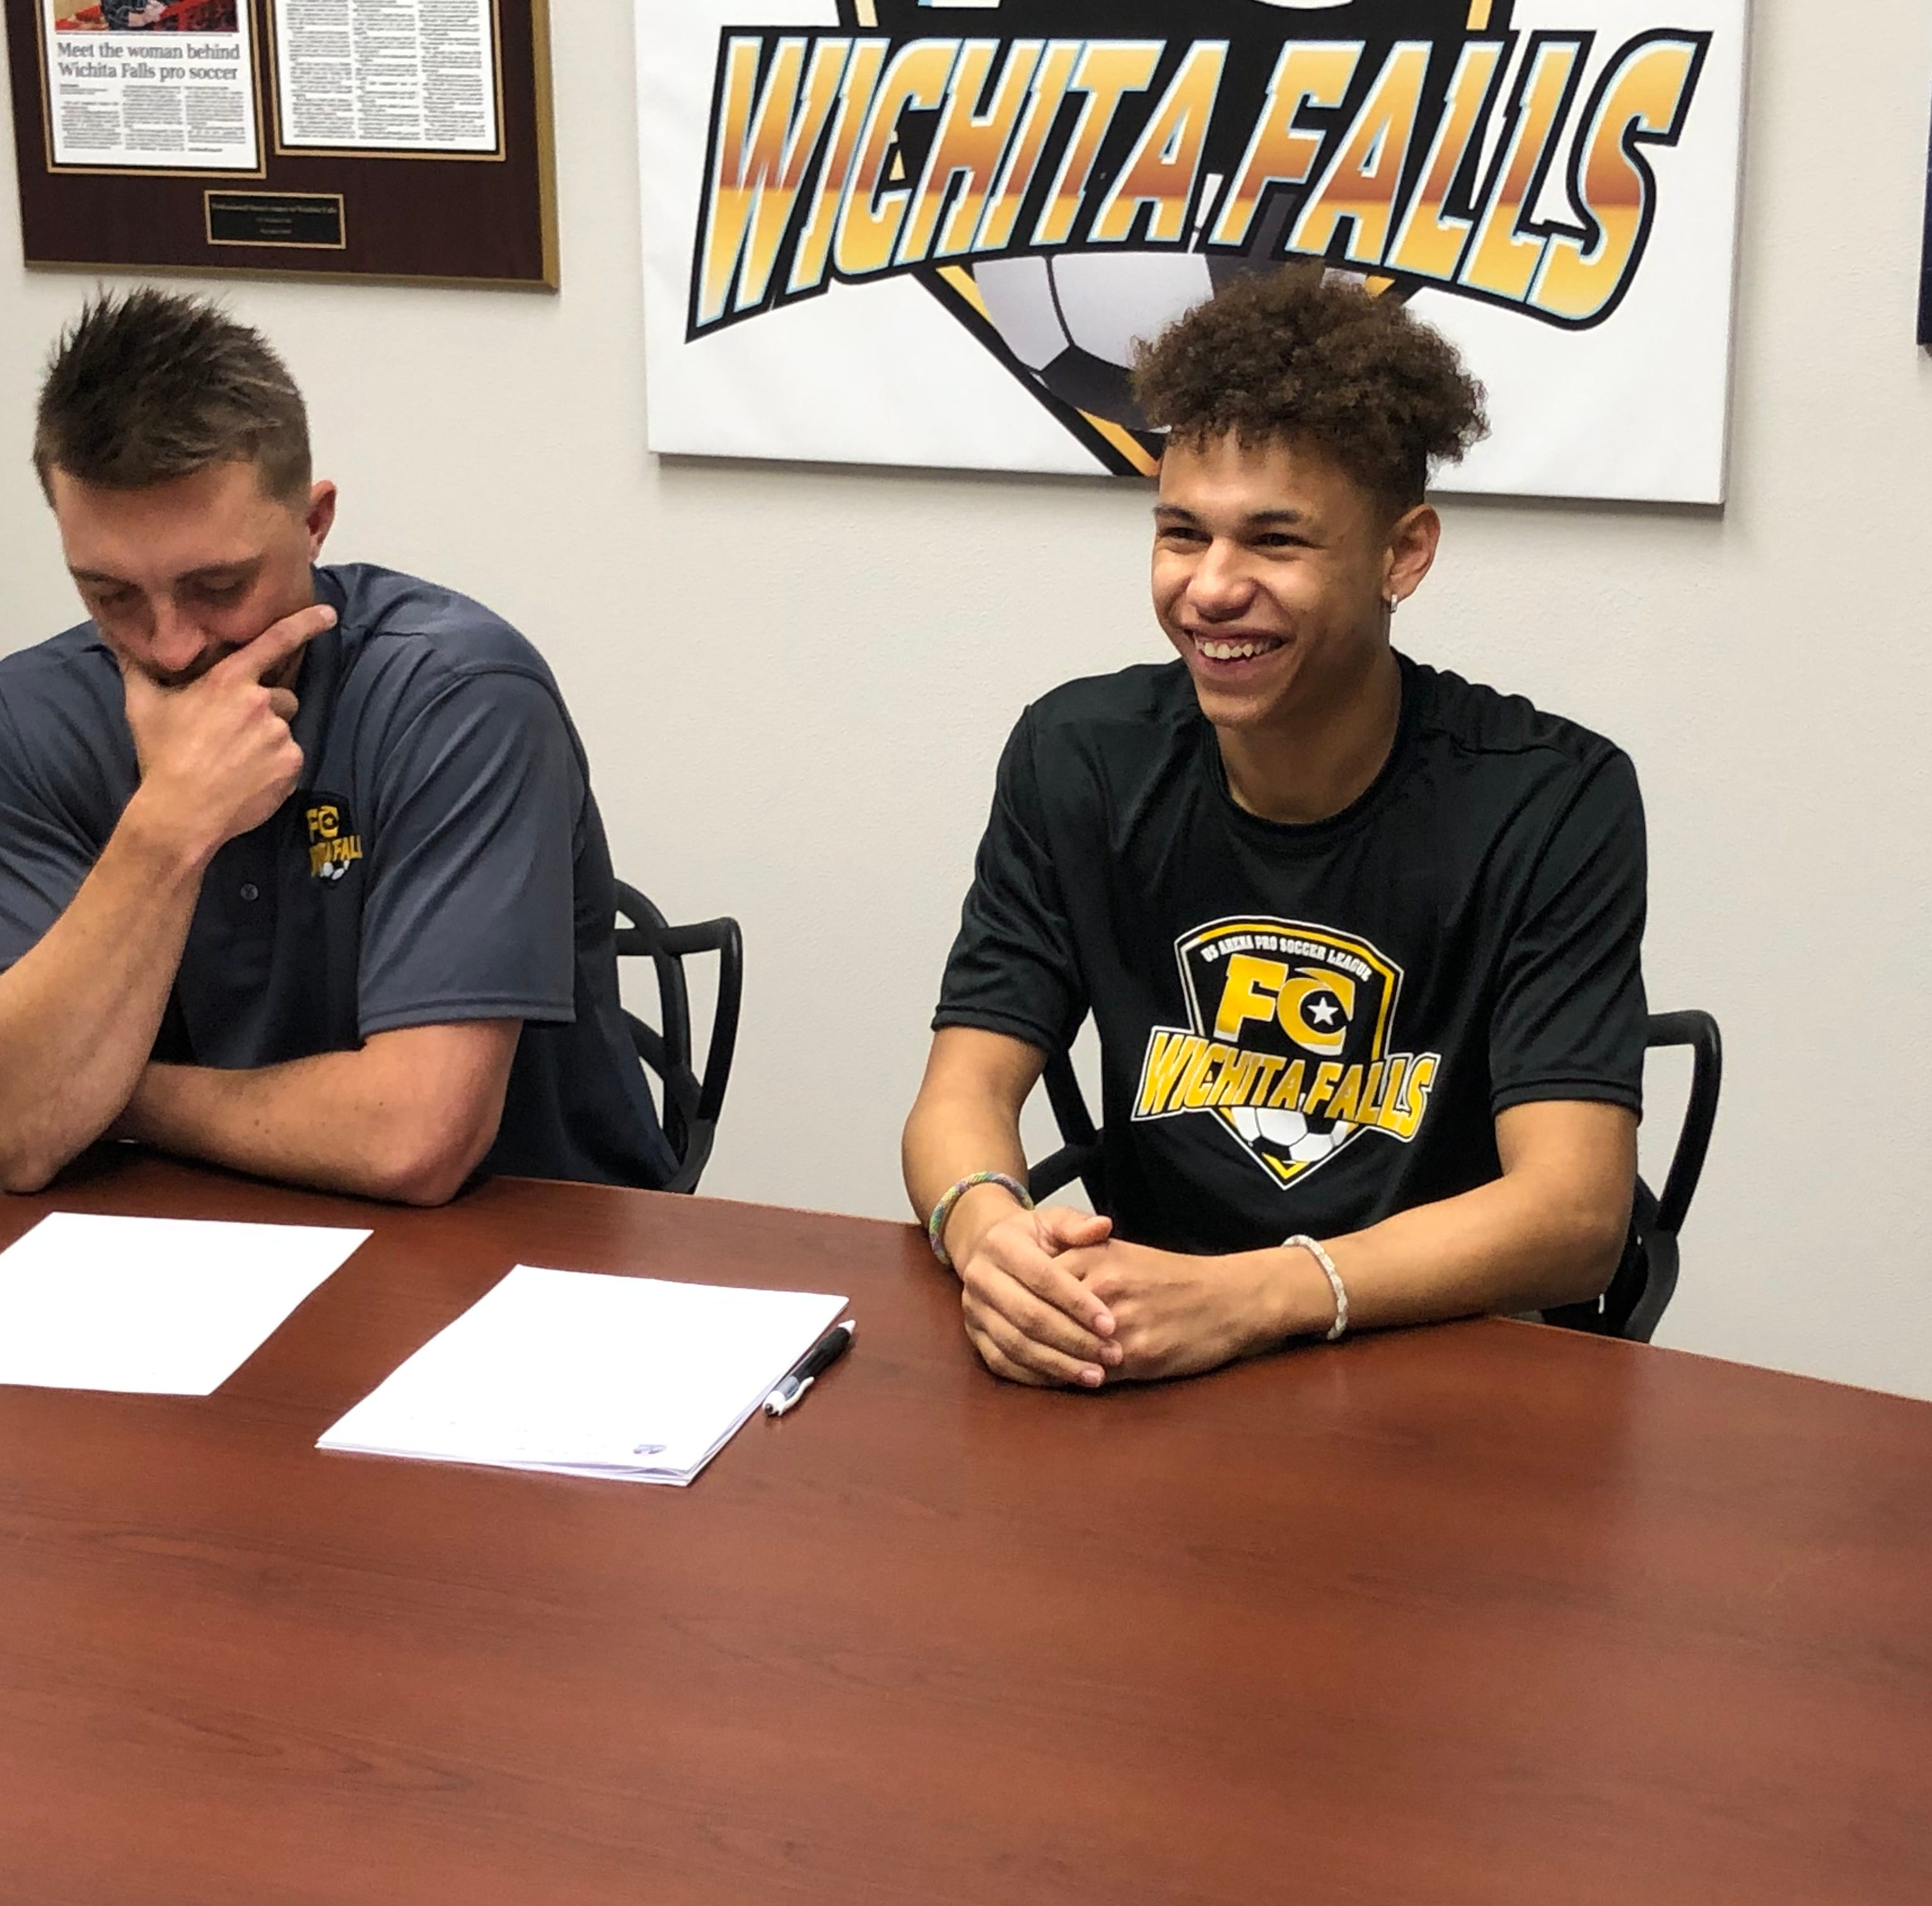 Former Rider standout Josh Peloquin signs with FC Wichita Falls